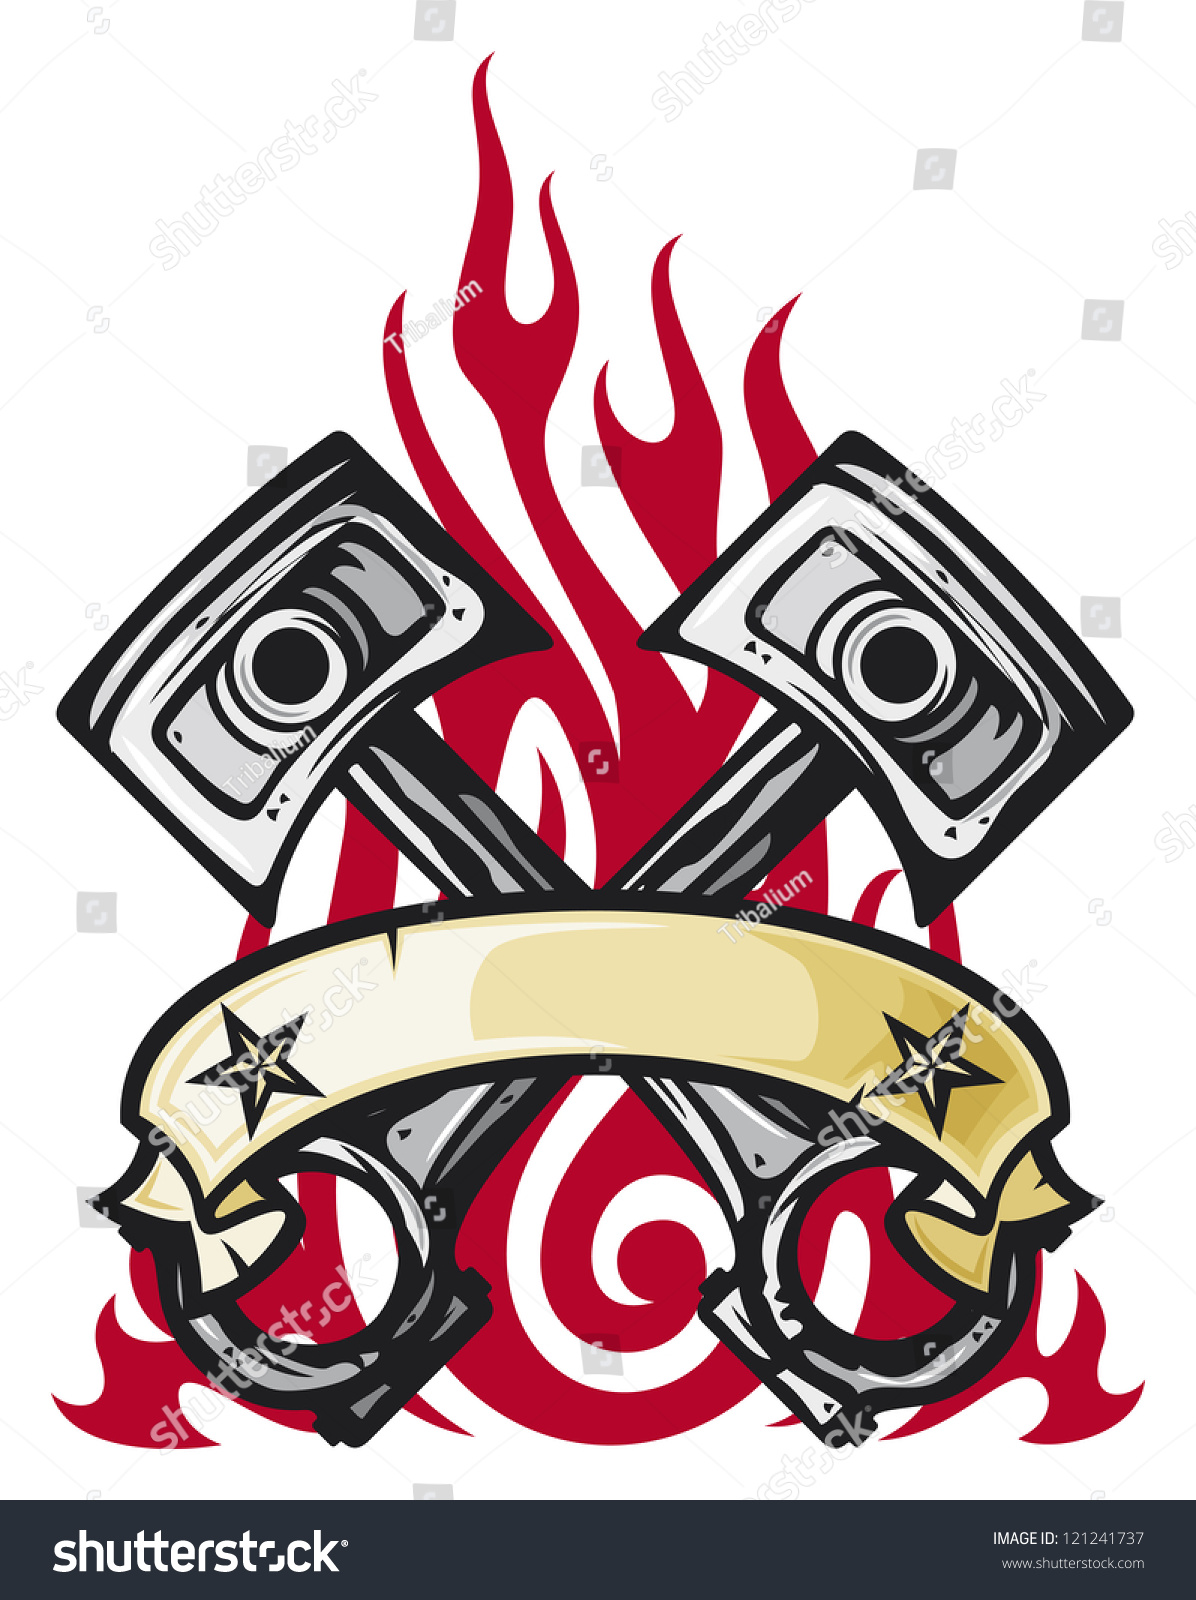 crossed engine pistons banner flame tattoo stock illustration 121241737 shutterstock. Black Bedroom Furniture Sets. Home Design Ideas